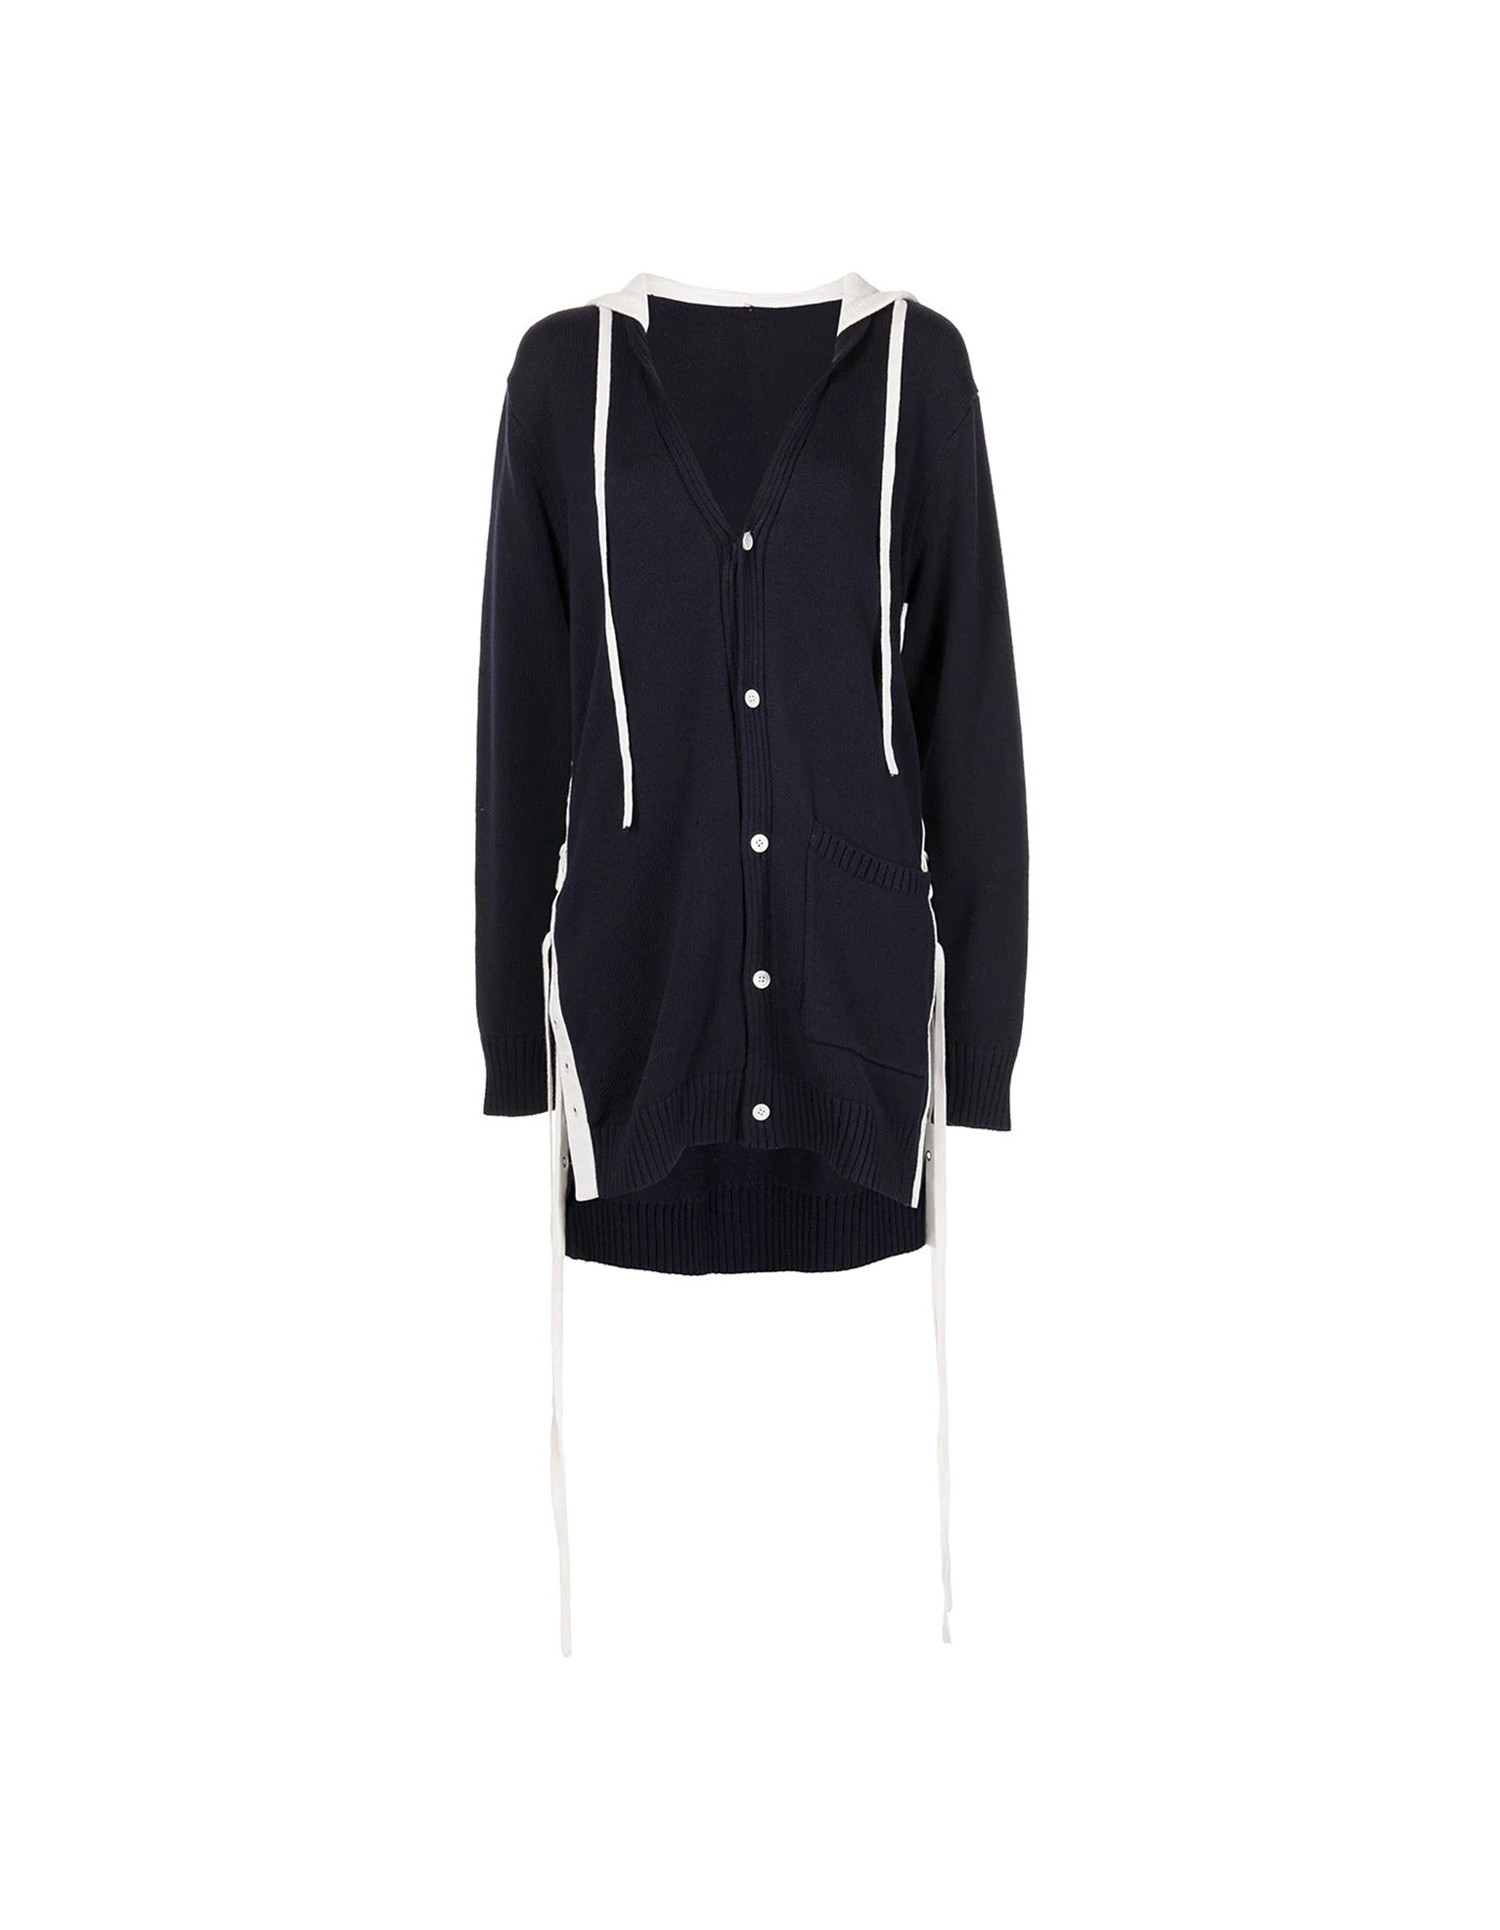 MONSE Hooded Lace Up Cardigan Flat Front